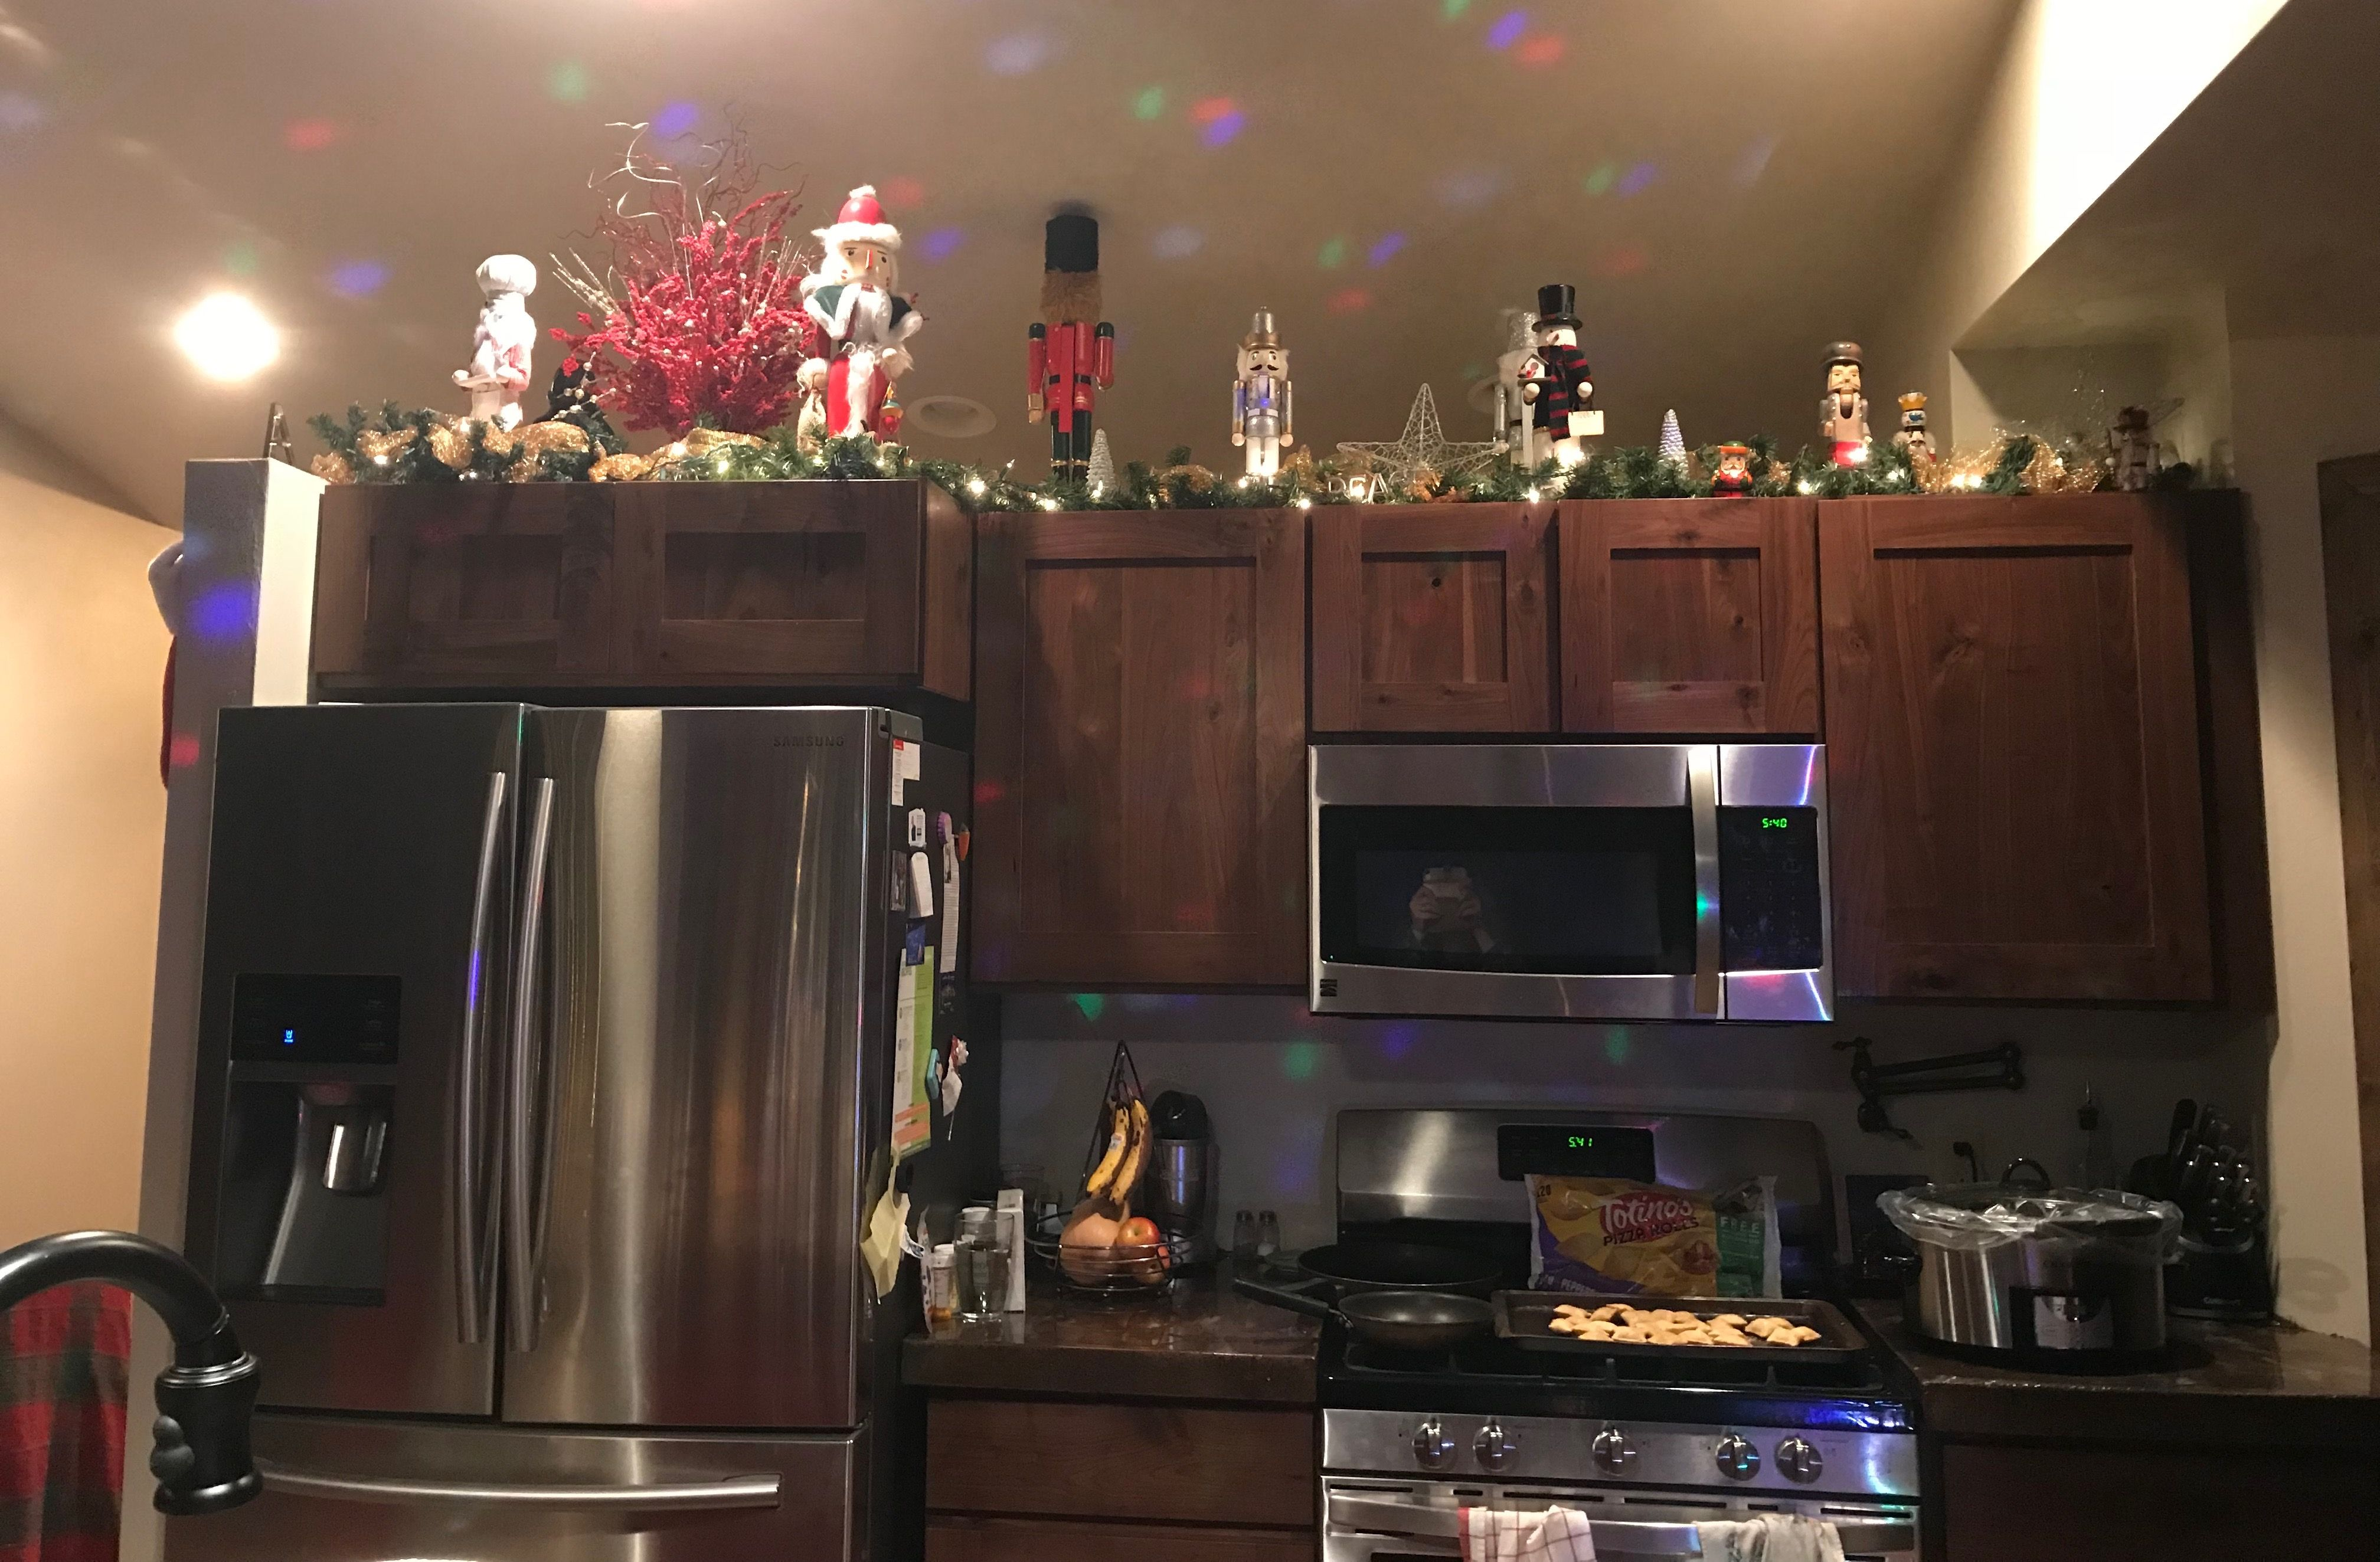 Christmas decorations above the kitchen cabinets. Lights ...